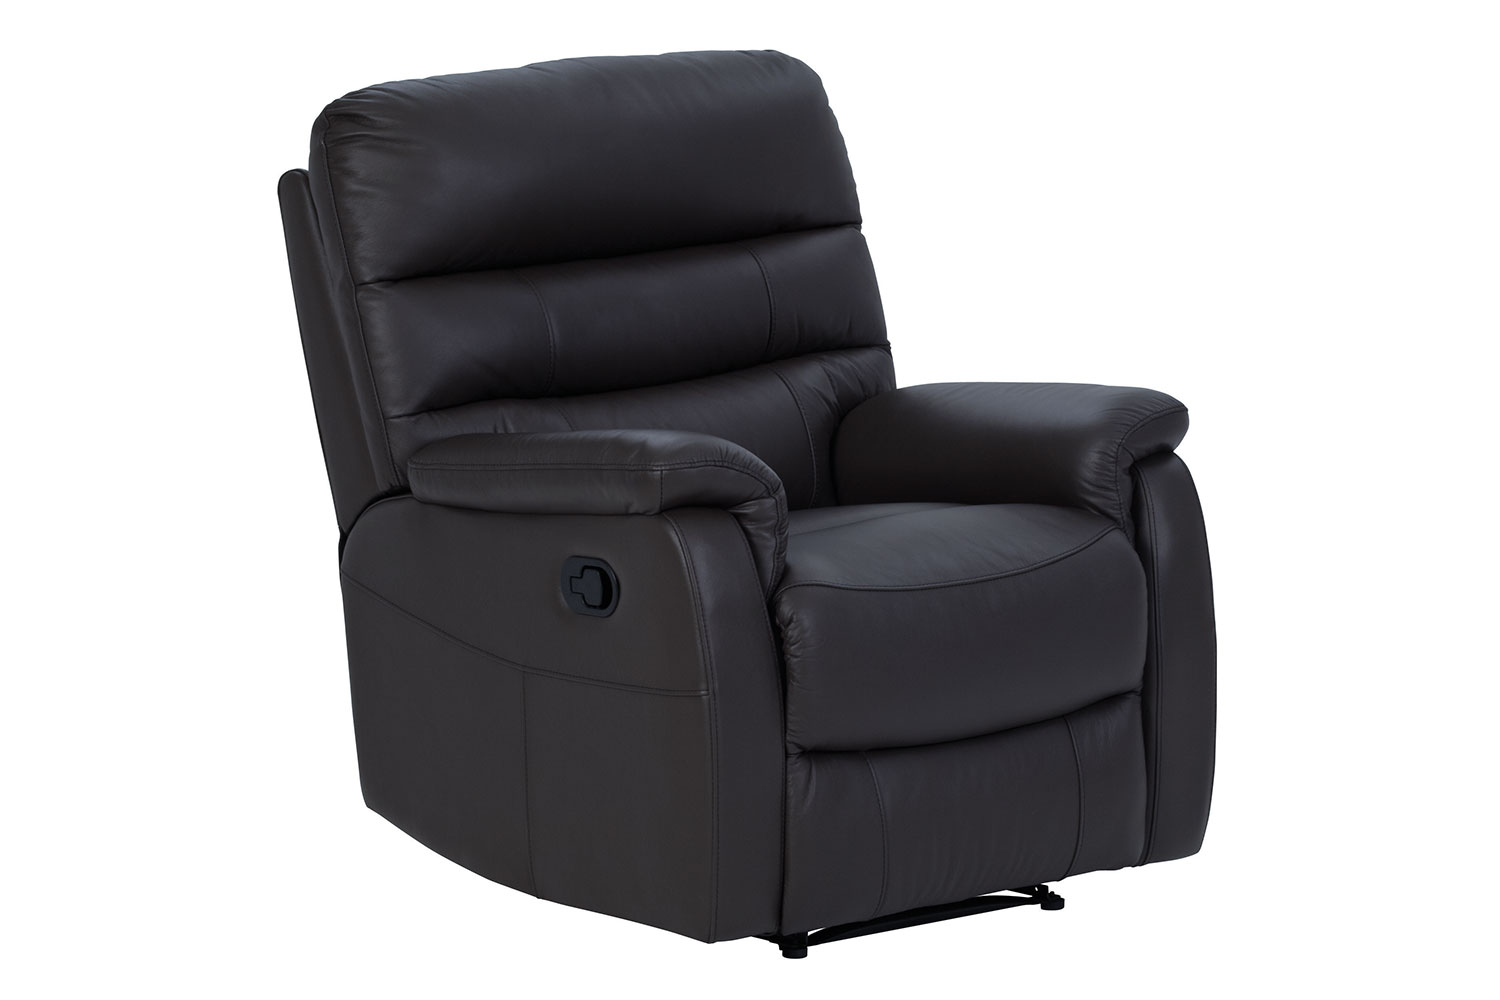 Leather Recliner Chairs Luna Leather Recliner Chair By Vivin Harvey Norman New